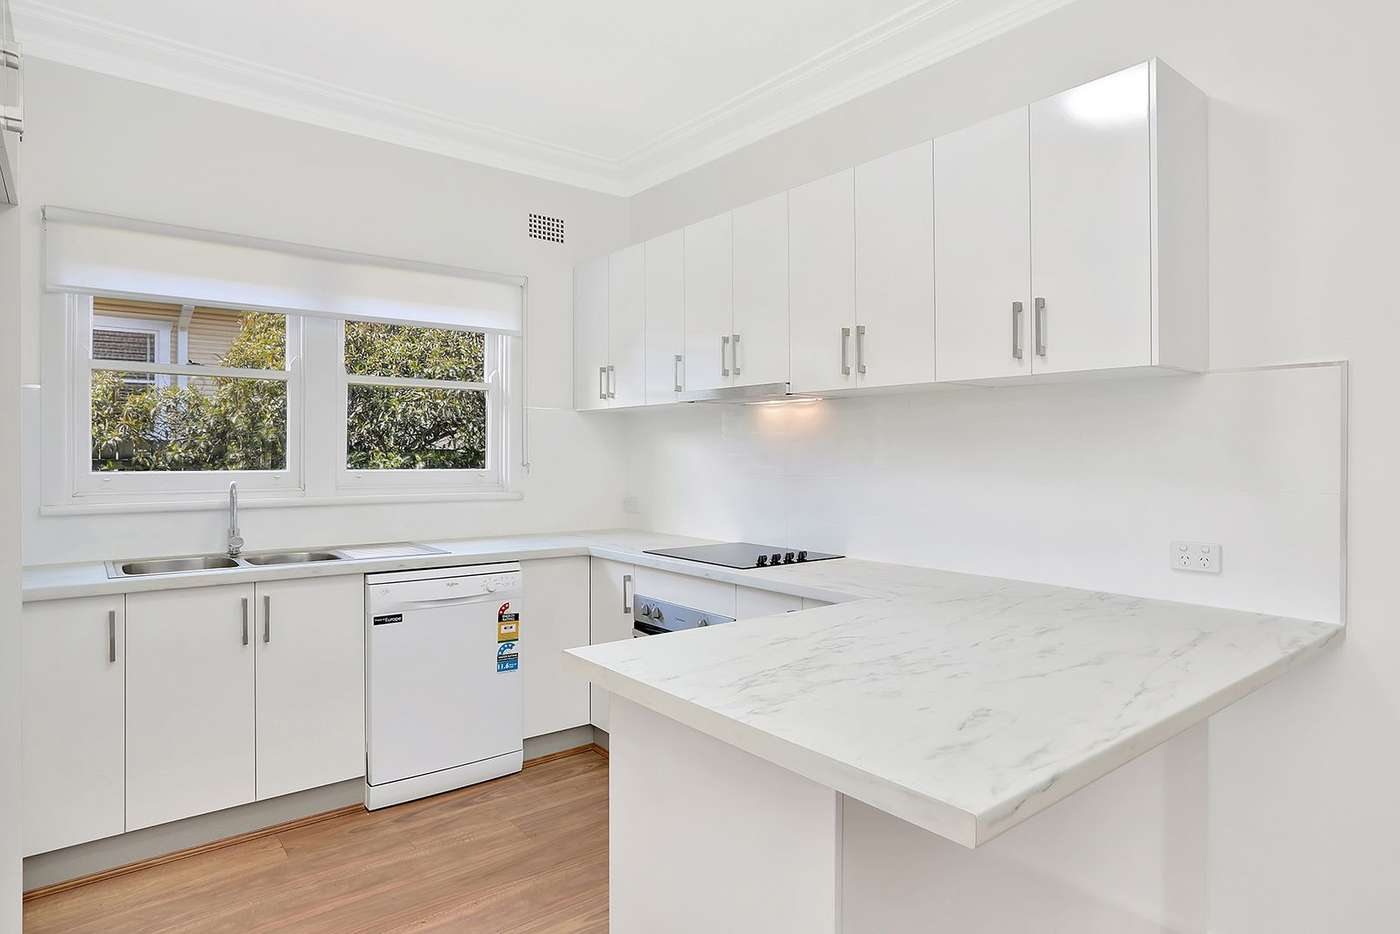 Main view of Homely house listing, 15 Torrs Street, Baulkham Hills NSW 2153